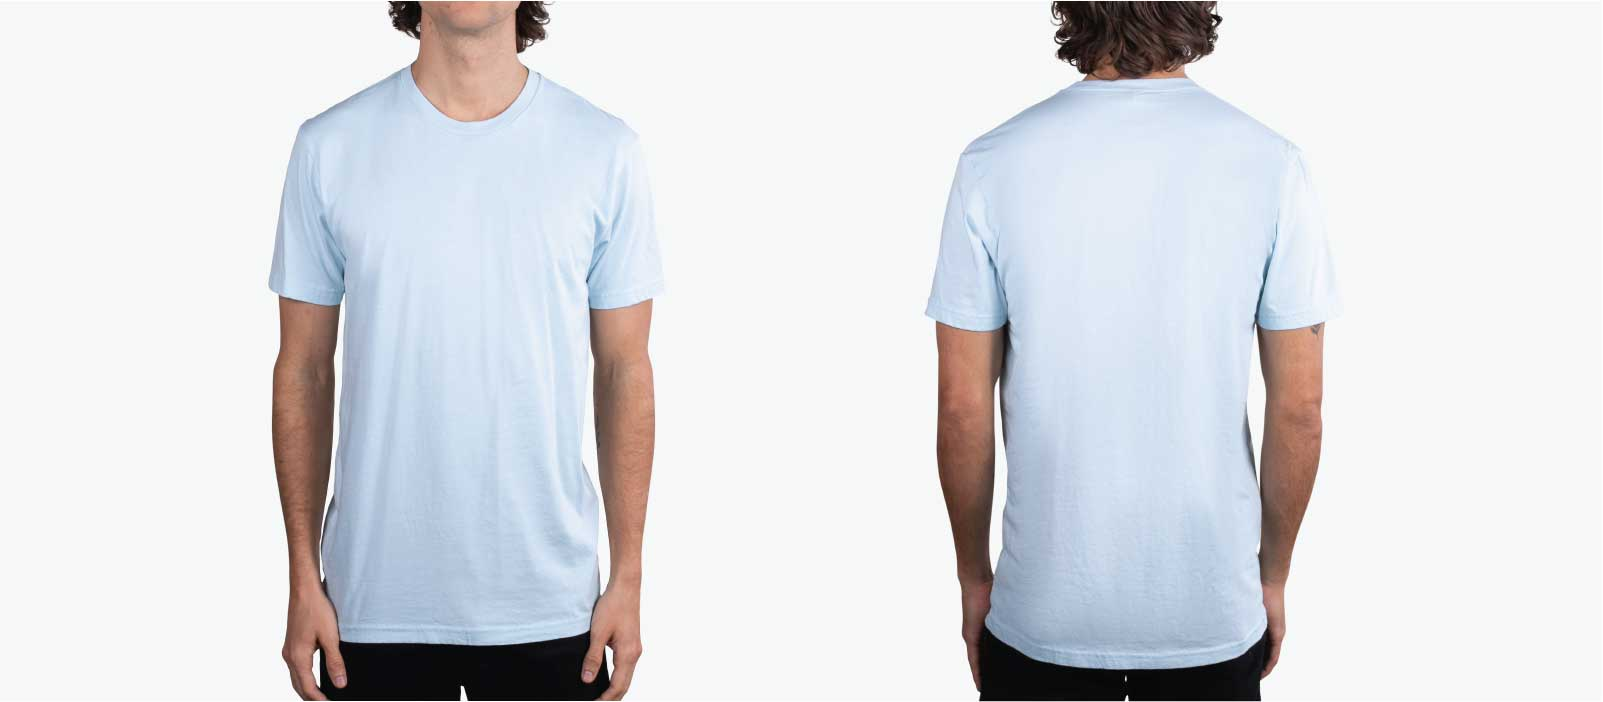 front and back modeling of light blue t-shirt